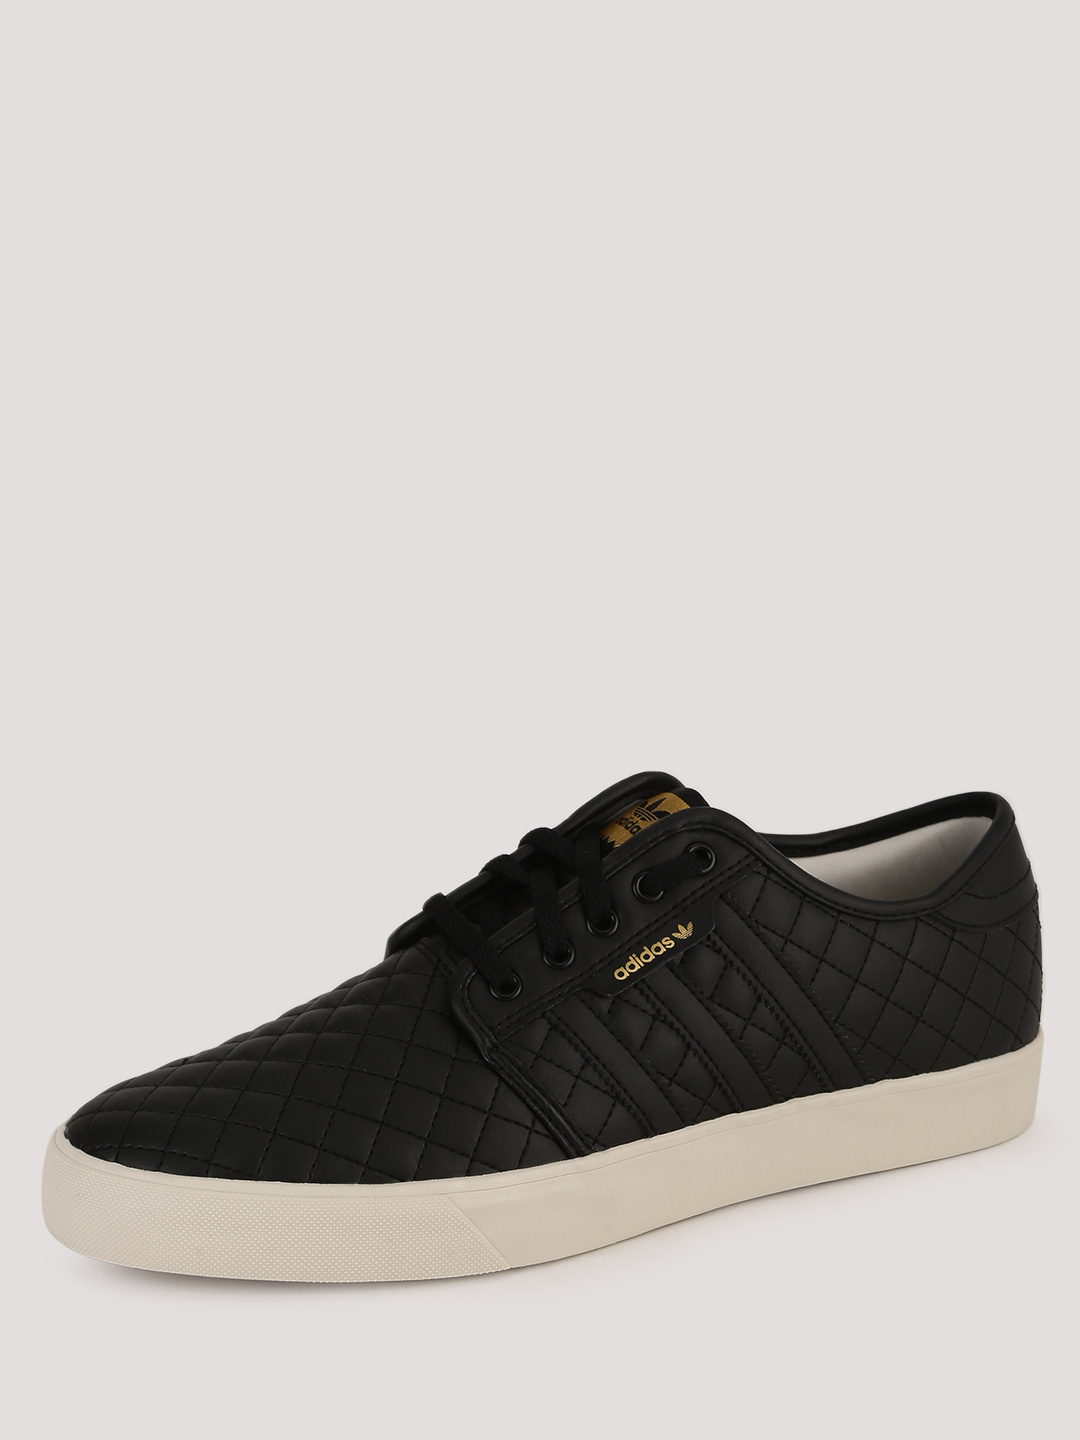 Adidas Originals Seeley Sneake...